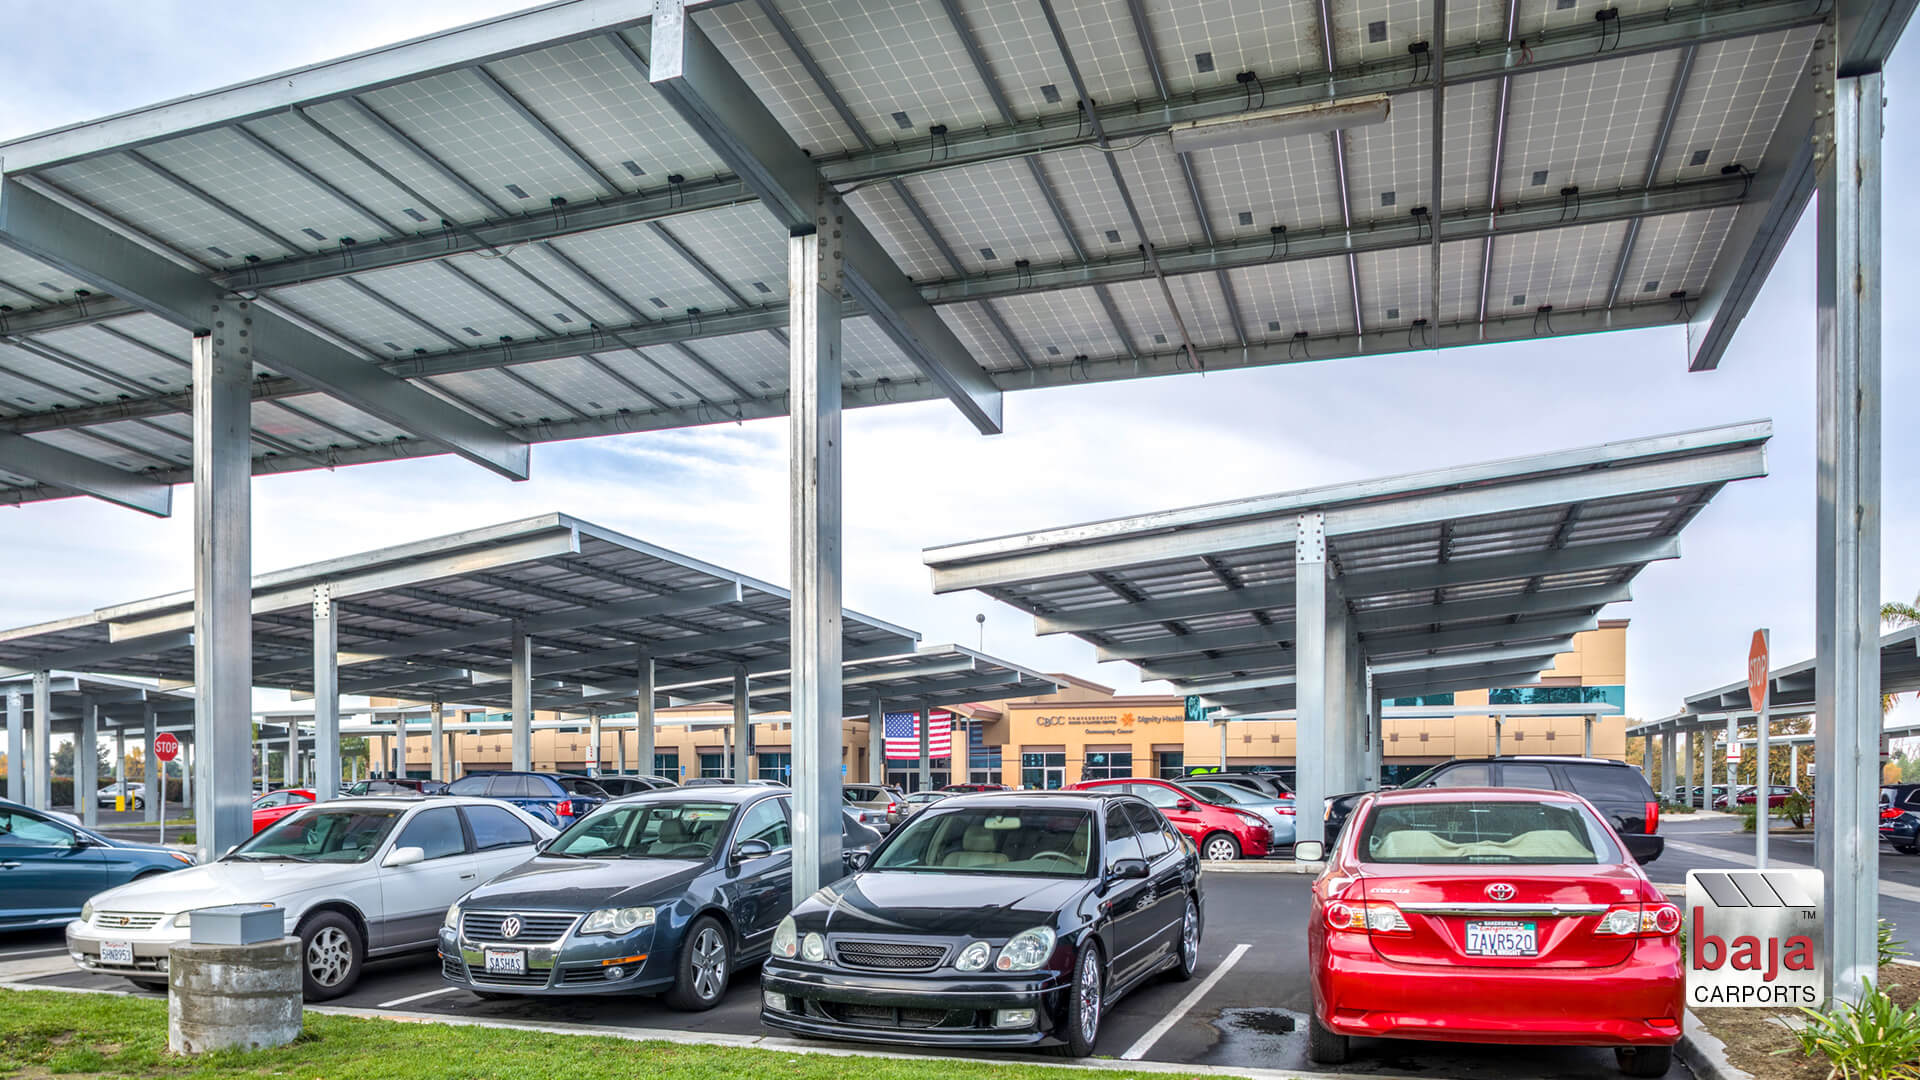 Comprehensive Blood and Cancer Center, Bakersfield, CA | Full Cantilever T Baja Carport Solar Support System | 1.3 MW | 3,762 Solar Panels | 409 Spaces | 77,484 sq ft